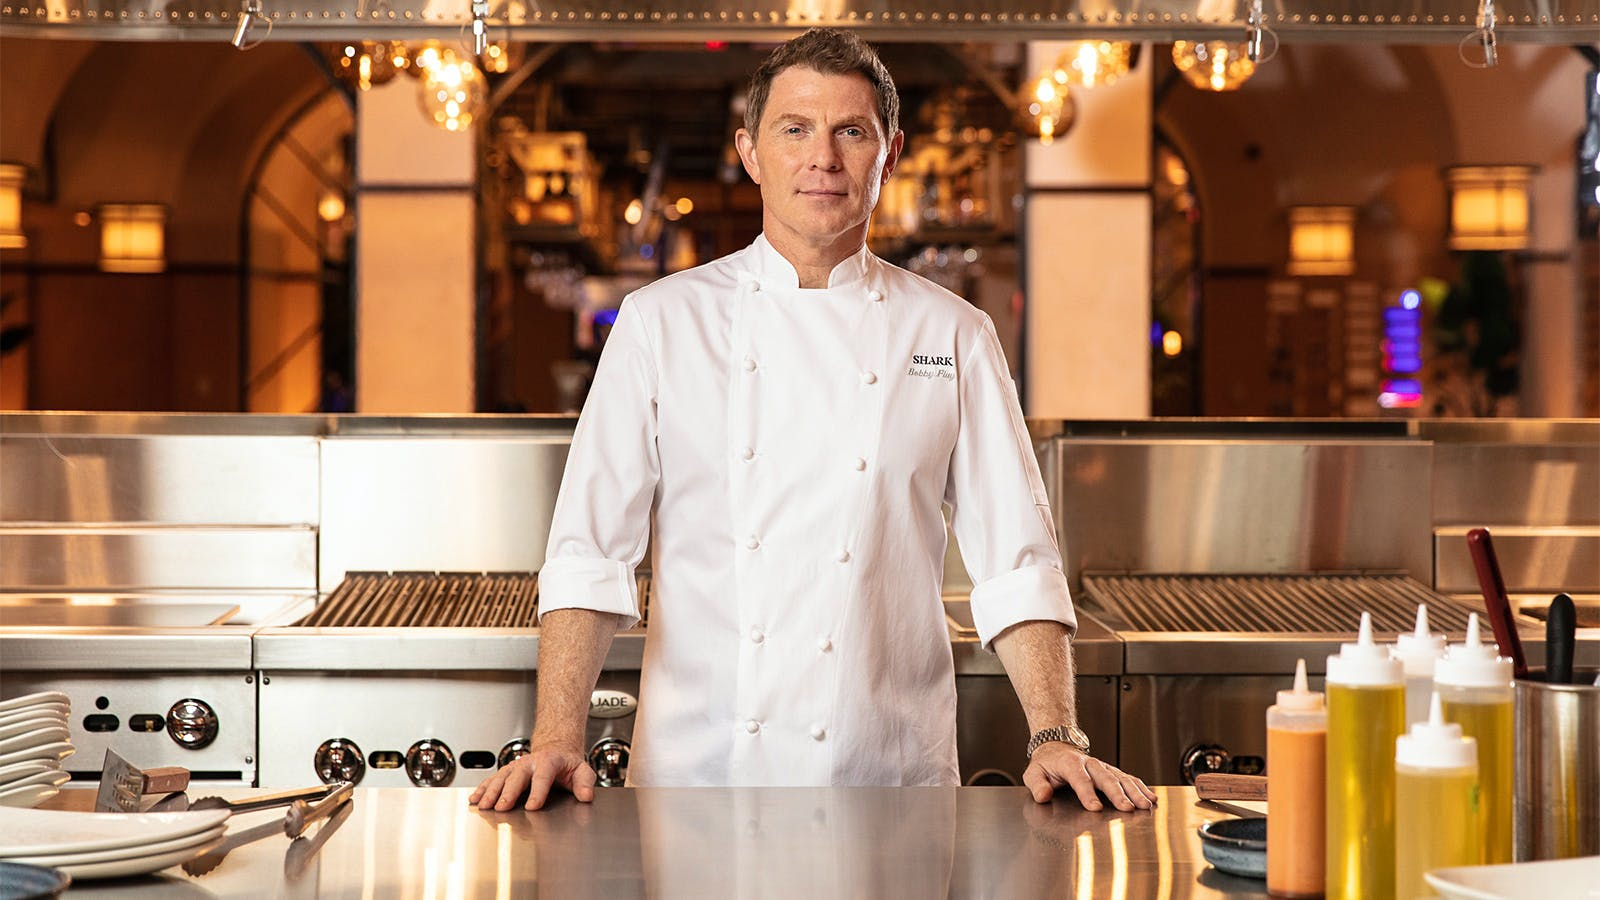 Who Is Bobby Flay Dating?